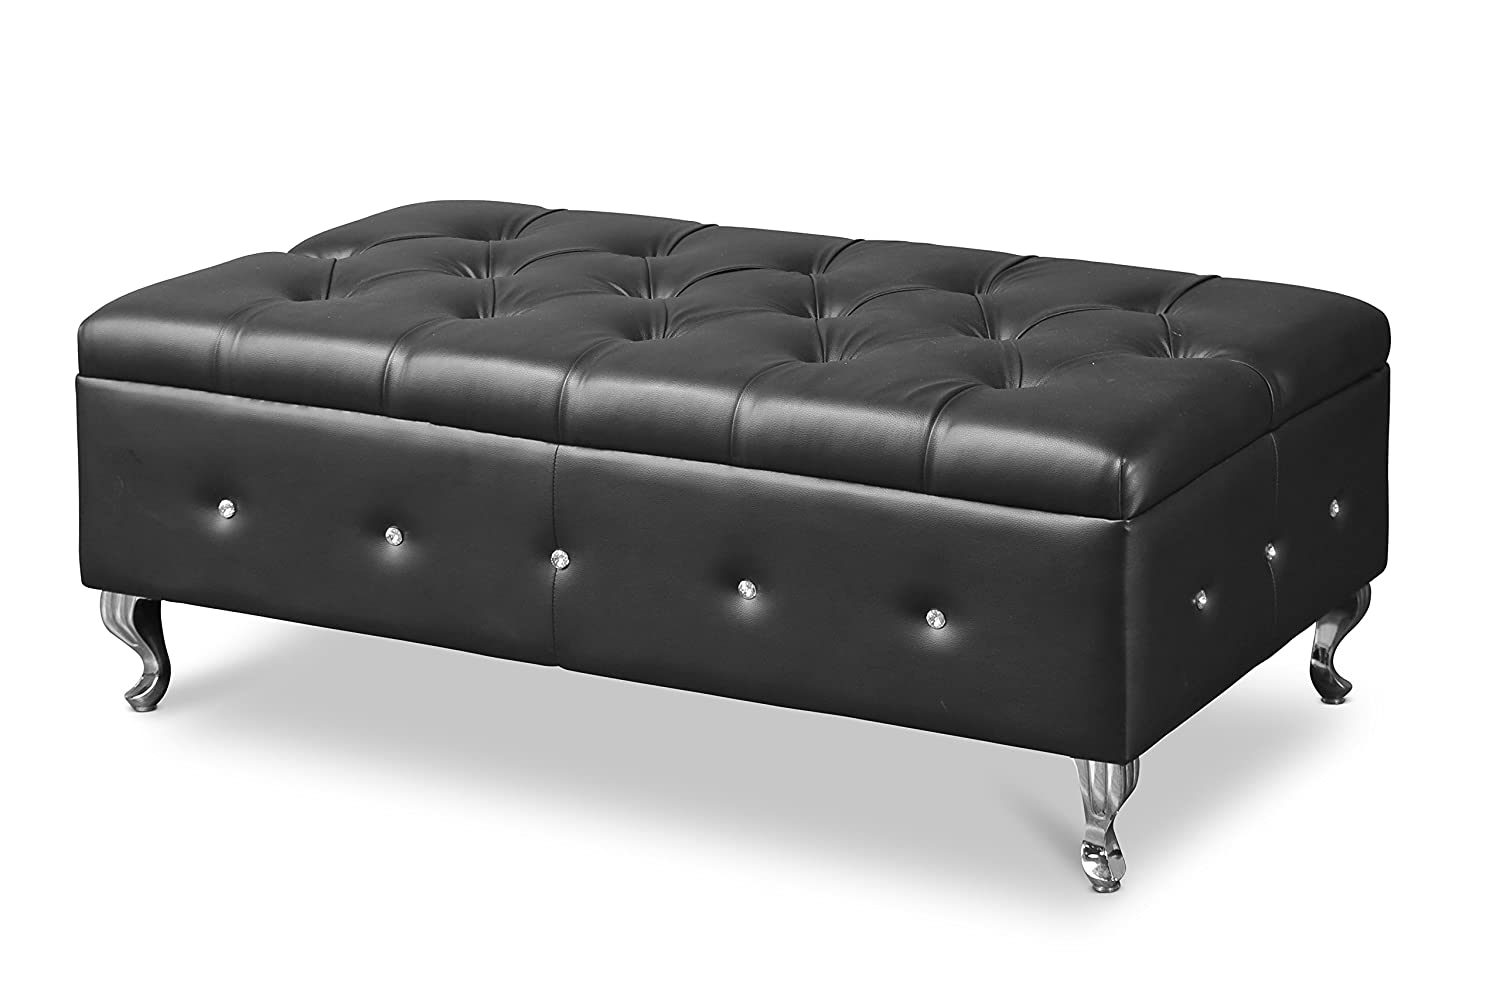 Baxton studio brighton button tufted upholstered modern bedroom bench - Amazon Com Baxton Studio Brighton Bedroom Bench Black Kitchen Dining